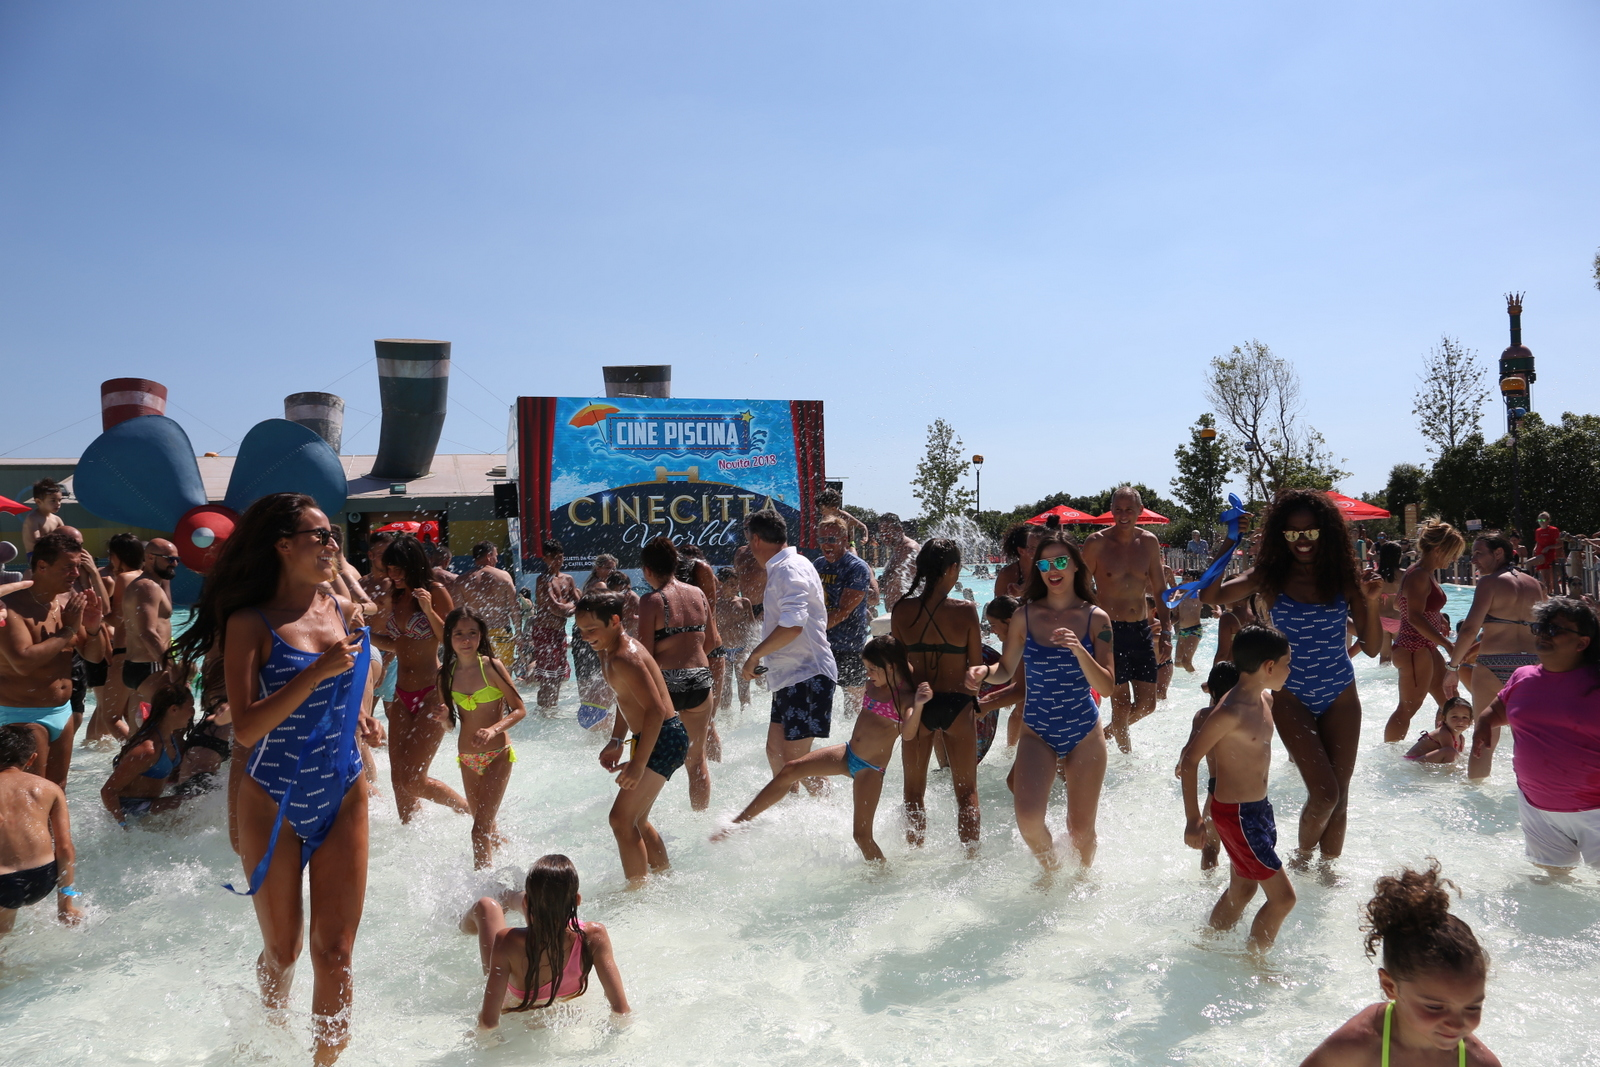 - CINEPISCINA CINECITTA WORLD 17